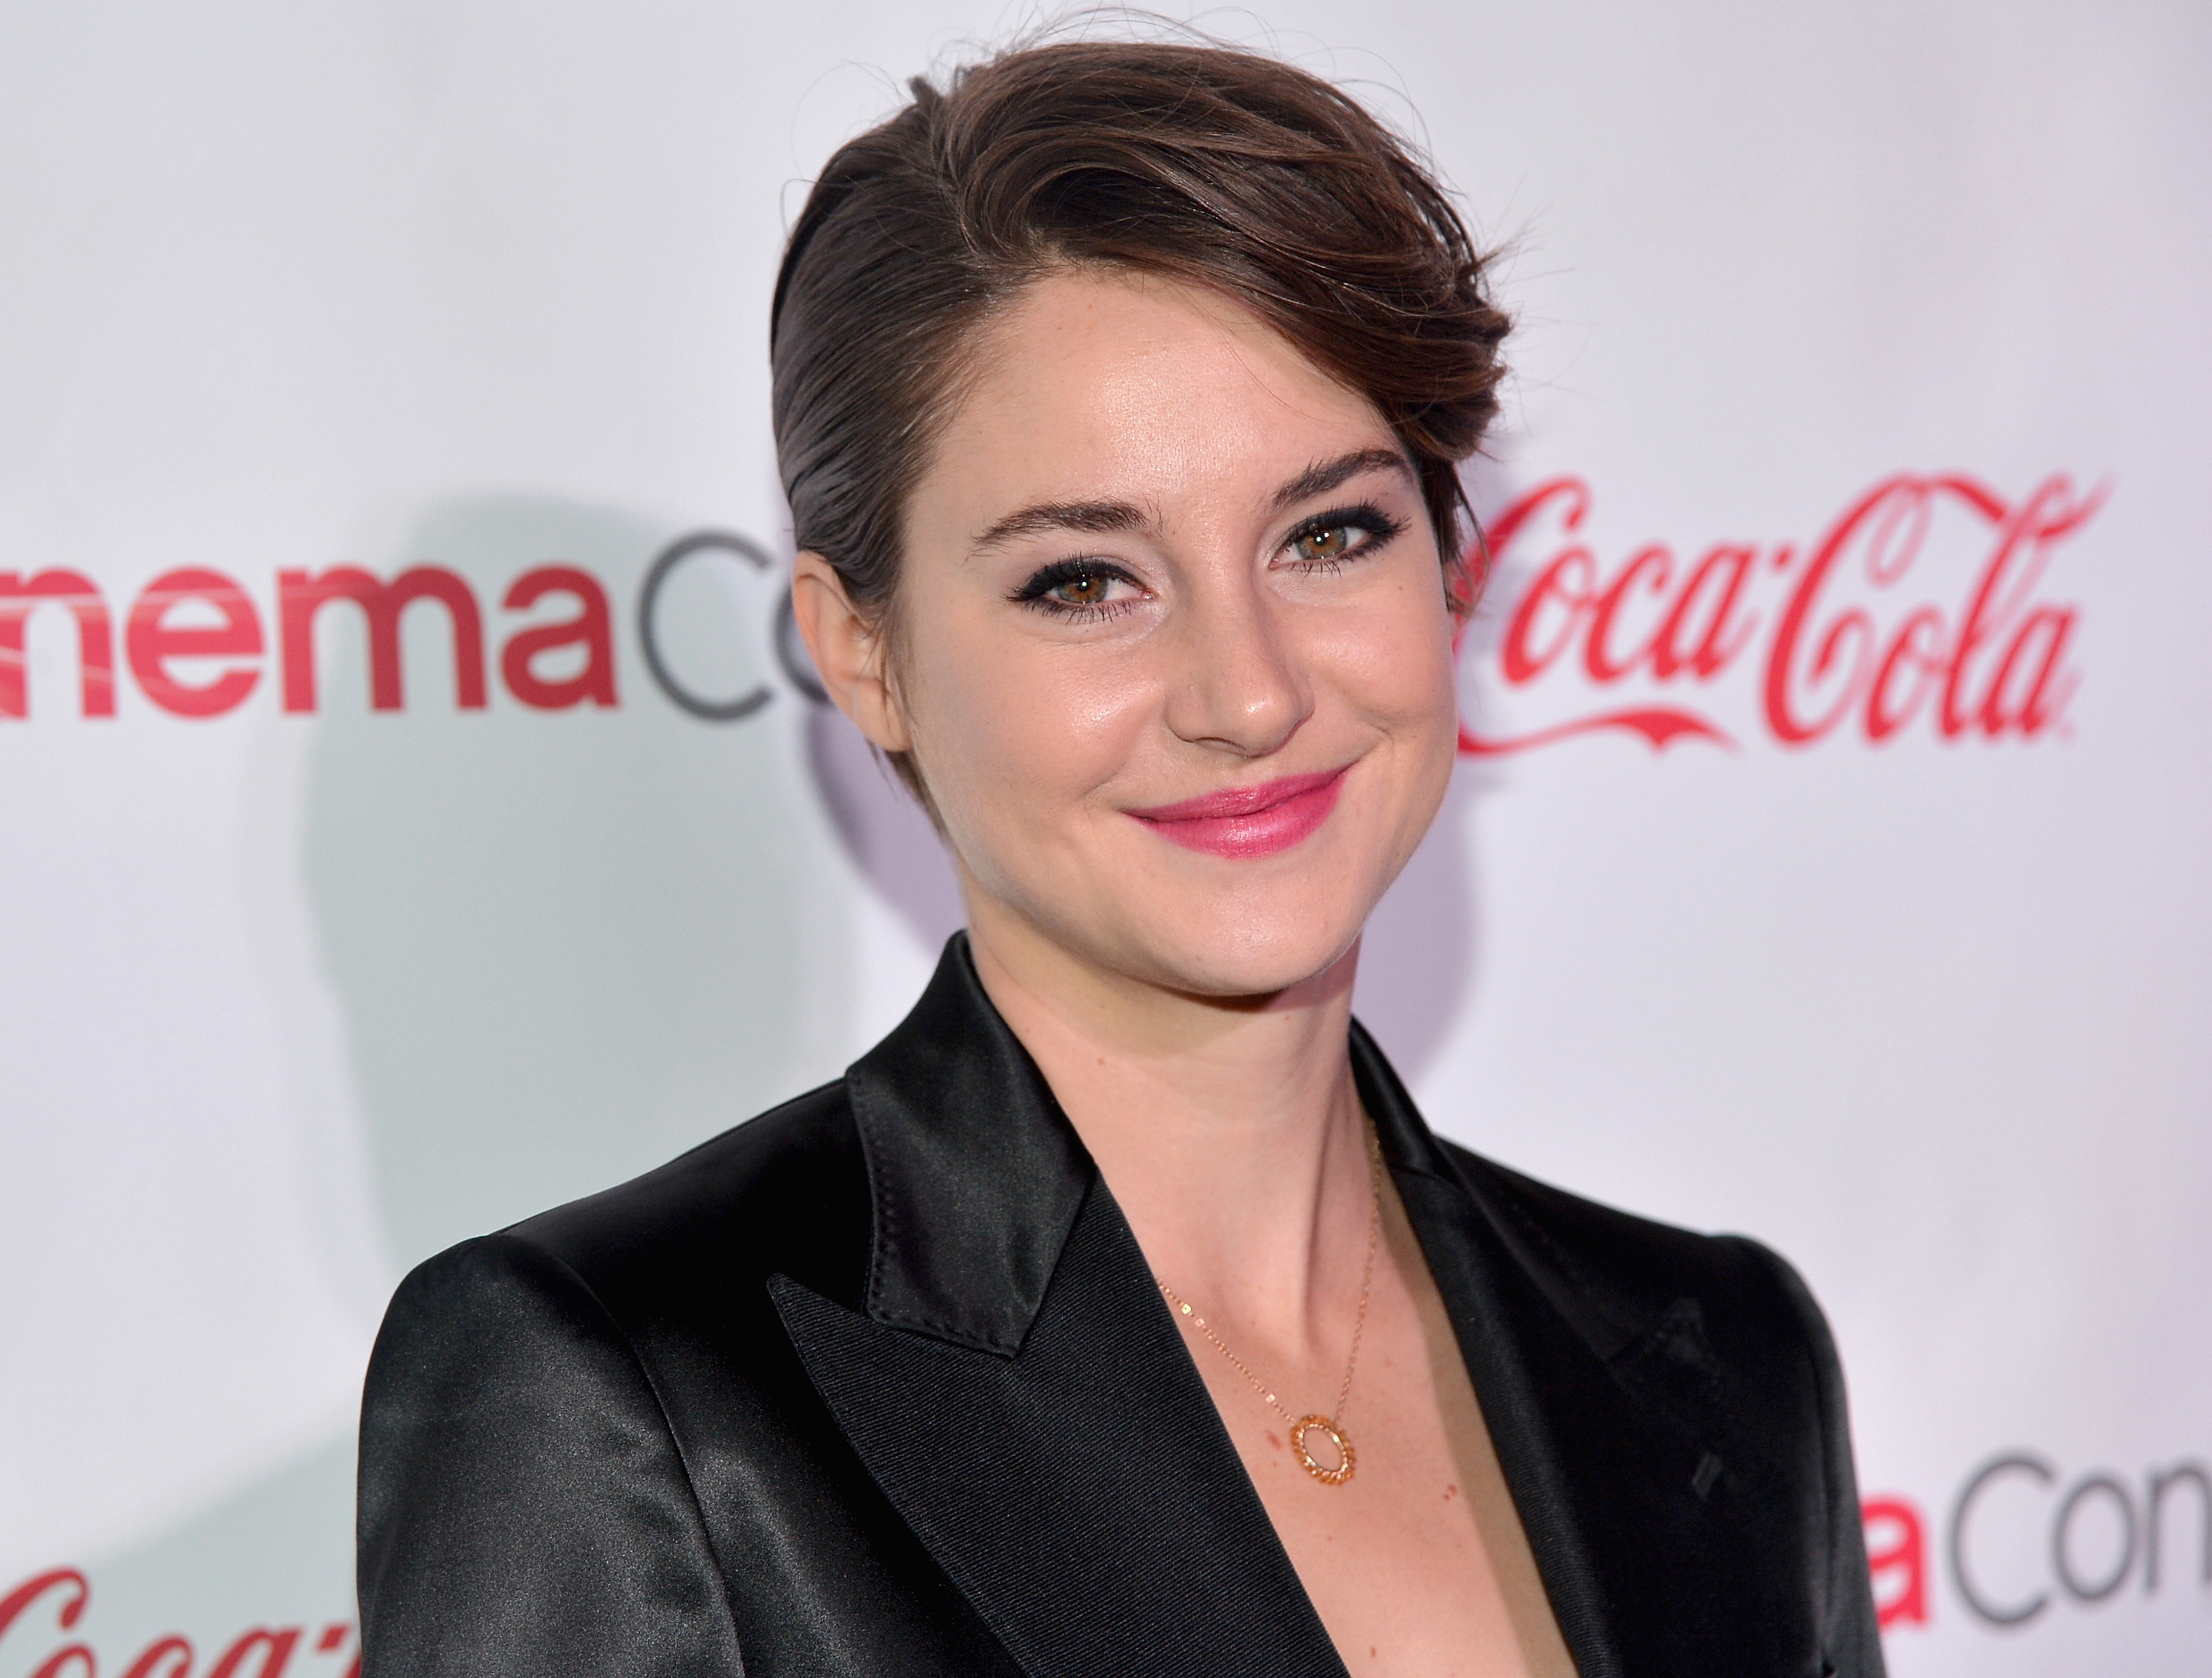 CinemaCon 2014 - The CinemaCon Big Screen Achievement Awards Brought To You By The Coca-Cola Company